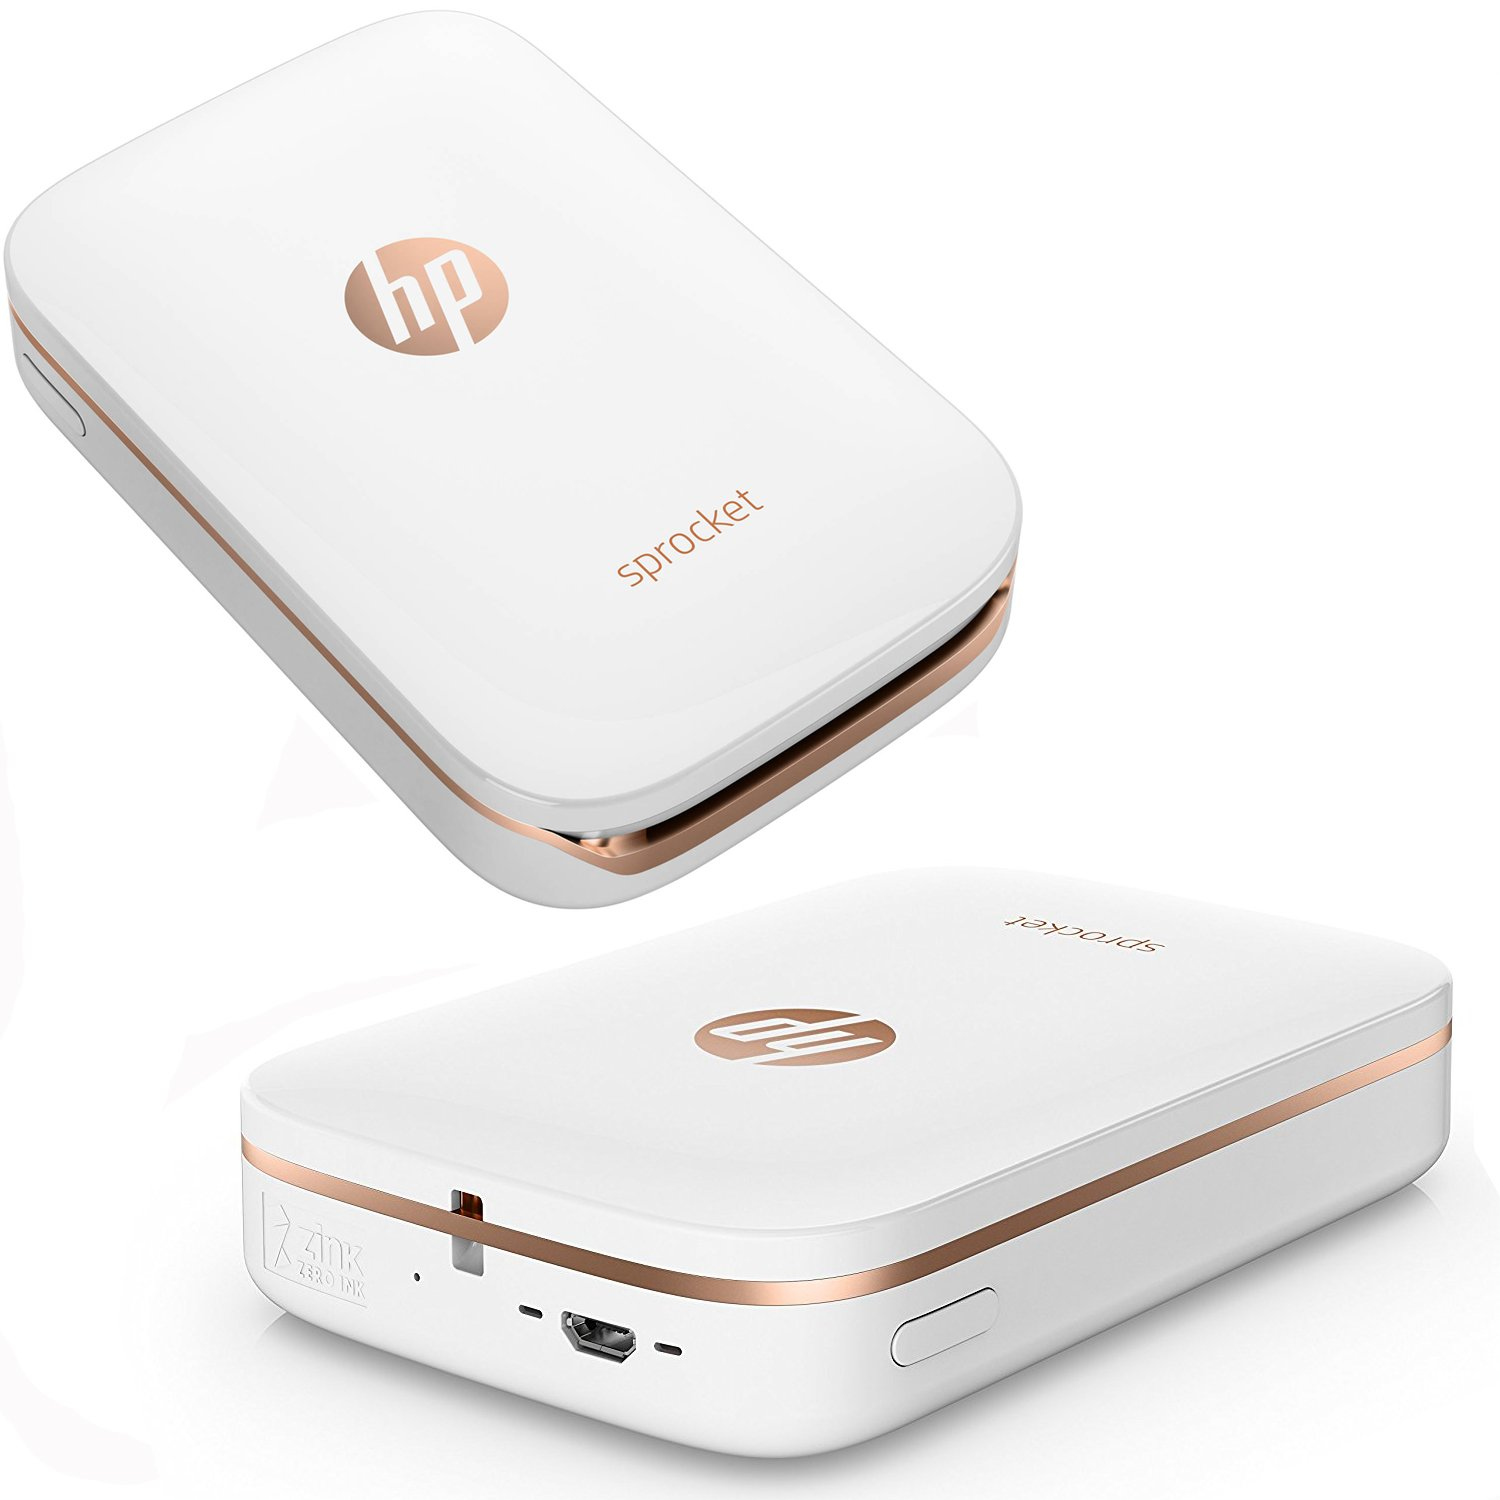 HP Sprocket Photo Printer, Print Social Media Photos on 2x3 Sticky-Backed Paper (White) + Photo Paper (10 Sheets) + USB Cable with Wall Adapter Charger + HeroFiber Ultra Gentle Cleaning Cloth by HeroFiber (Image #2)